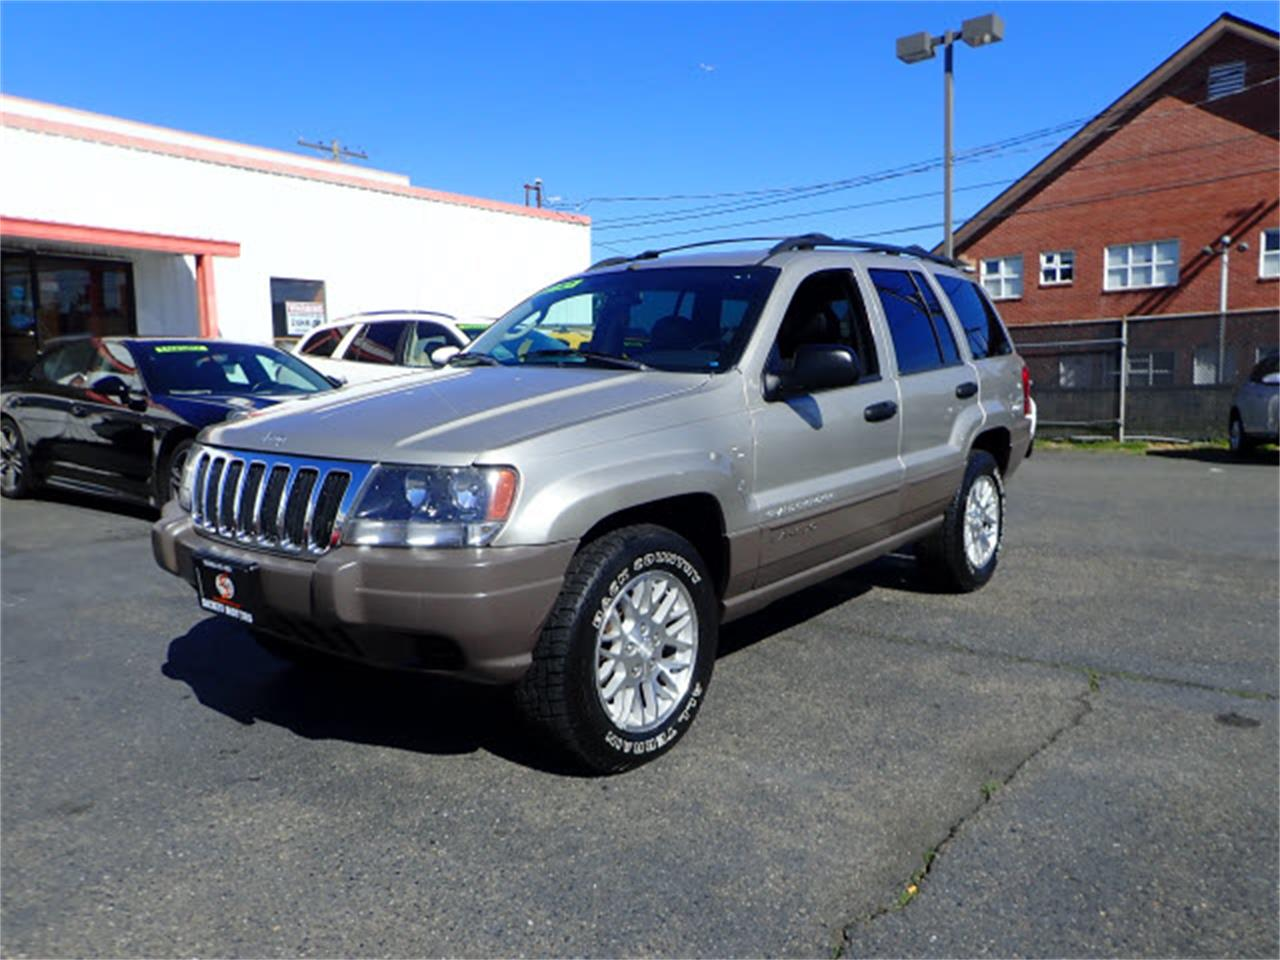 2003 jeep grand cherokee for sale classiccars com cc 1147622 2003 jeep grand cherokee for sale